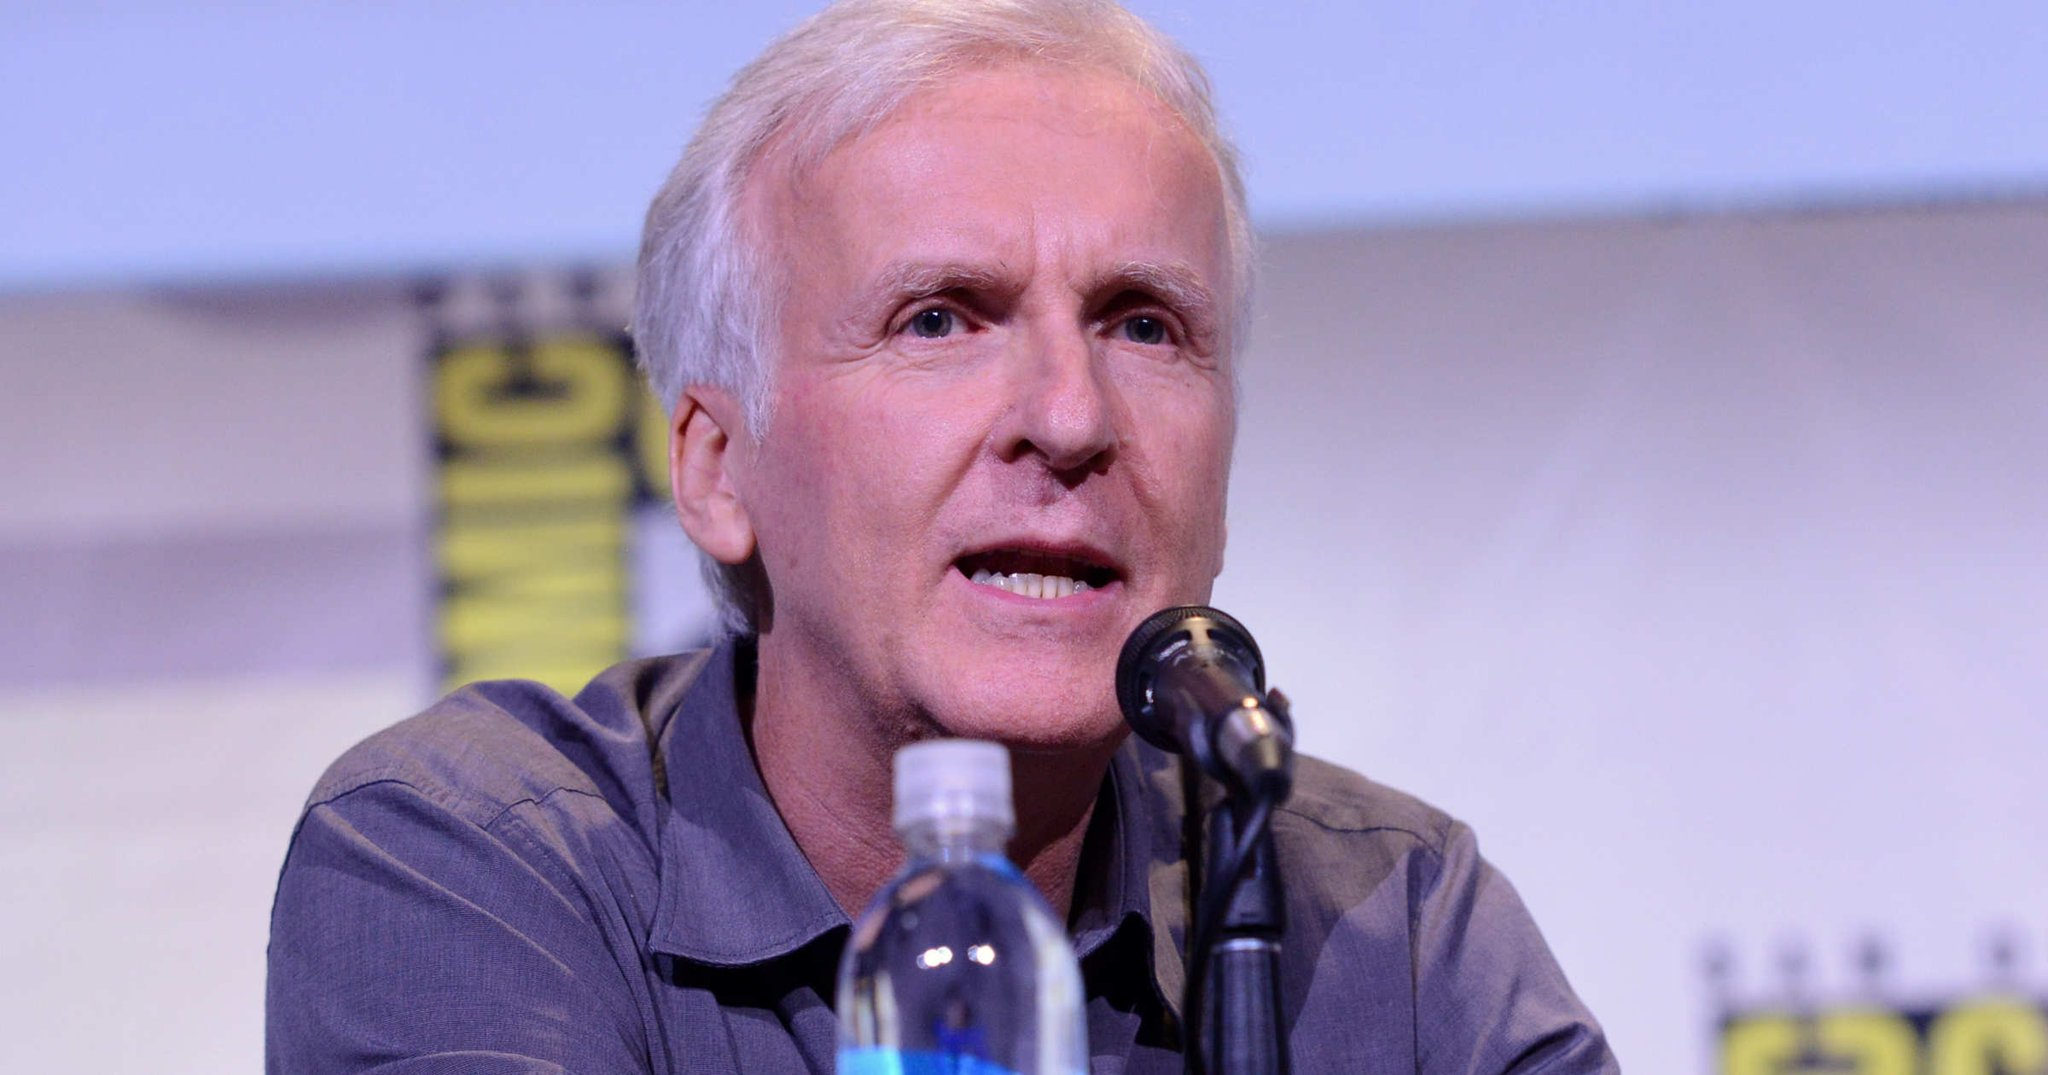 James Cameron on #MadMax's Furiosa and his iconic female characters: https://t.co/fm4zOD4MTH https://t.co/ISqE4EXDD4